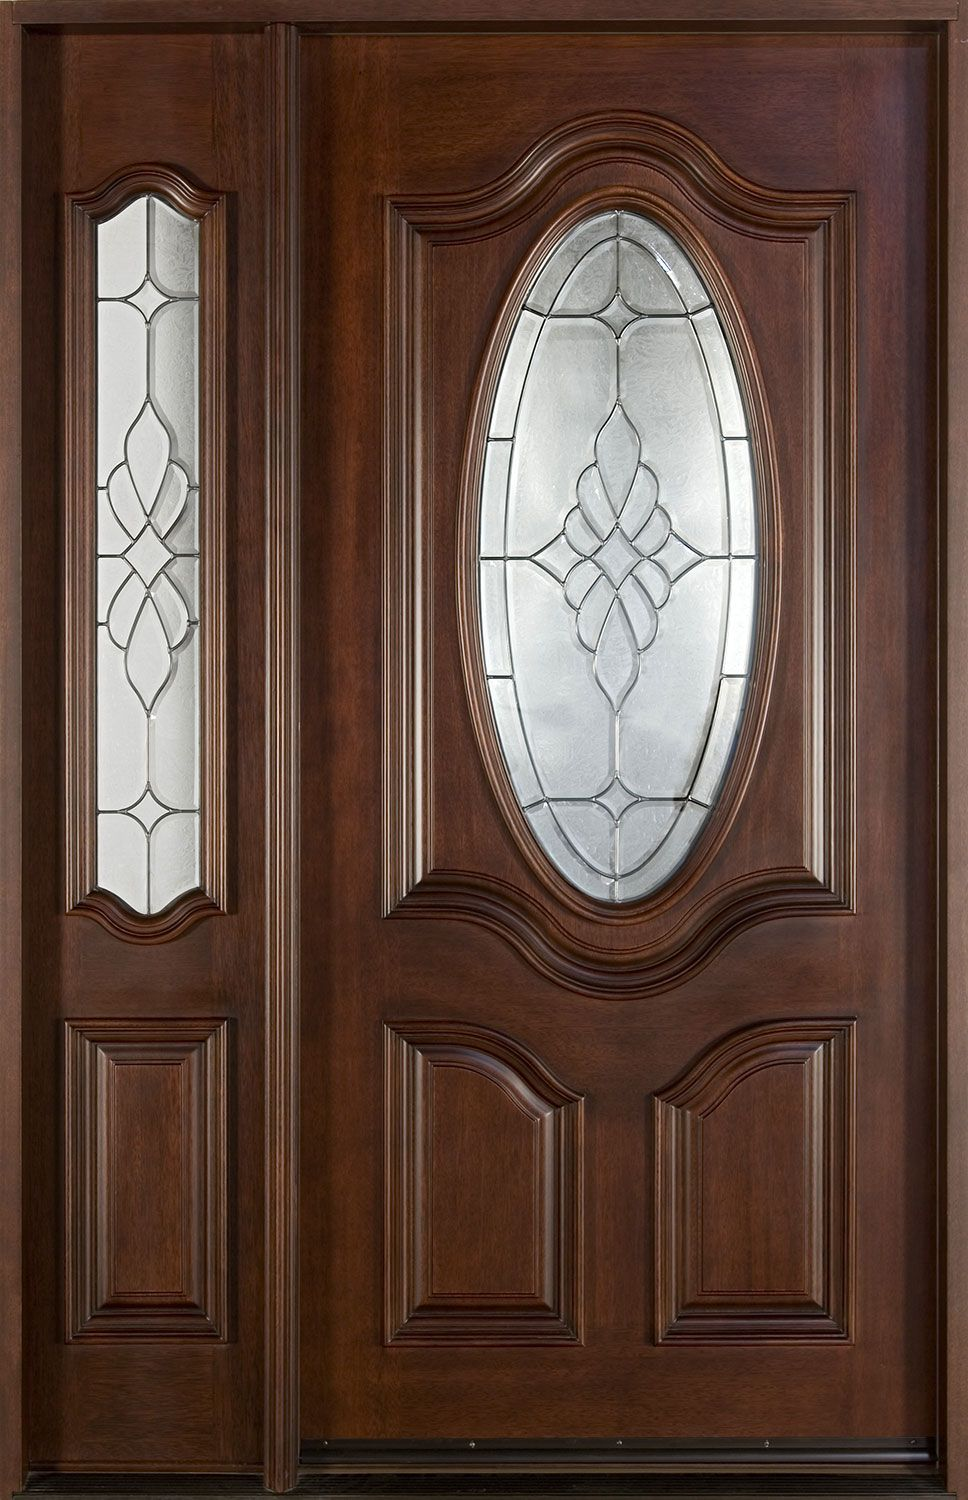 Doors for Builders, Inc. | Solid Wood Entry Doors | Exterior Wood ...